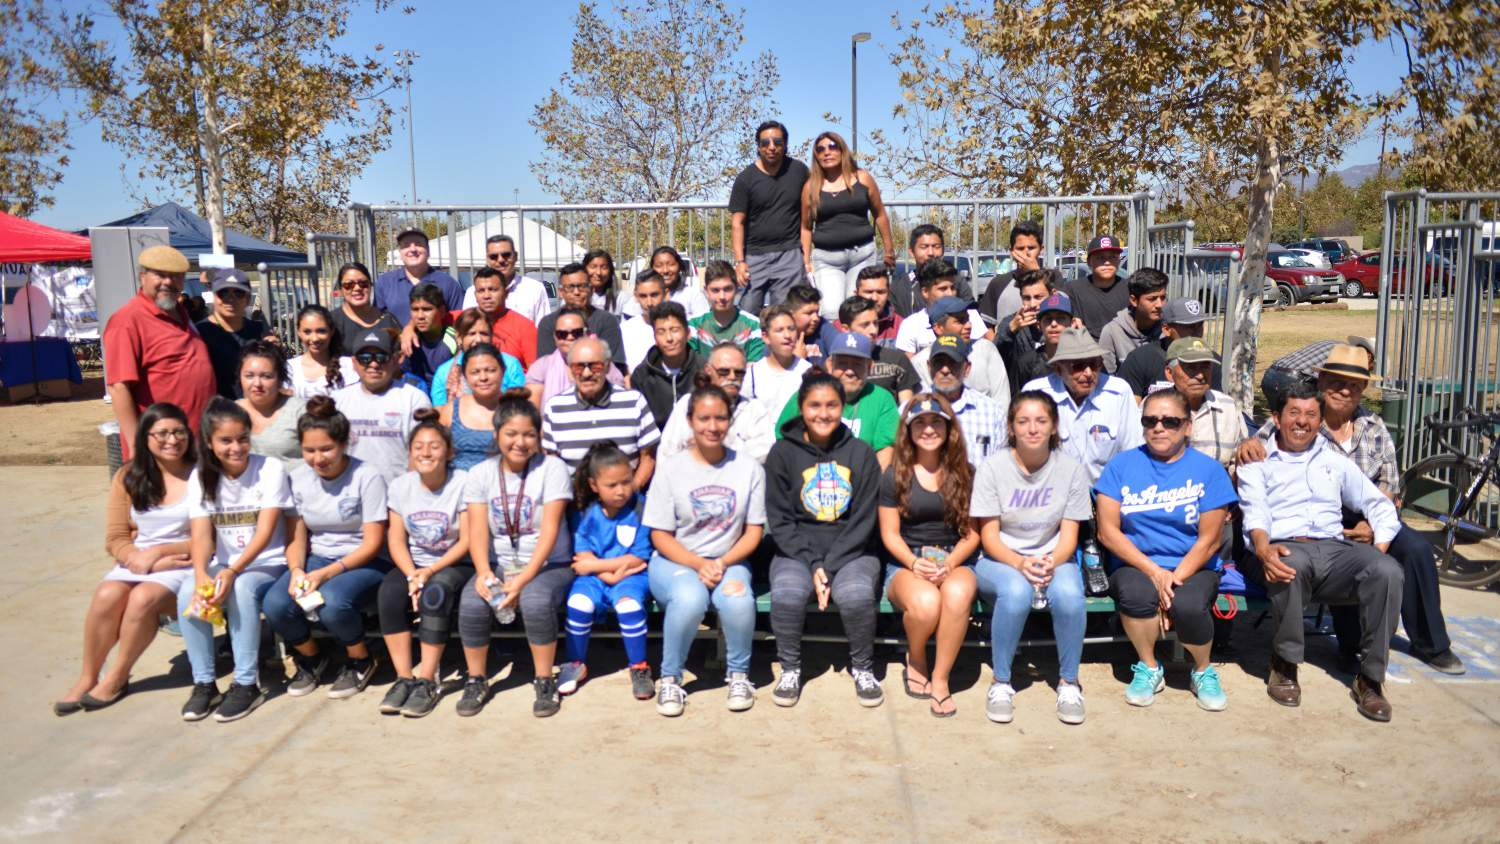 Group picture of the volunteers at The City Project NPLD Event in LA